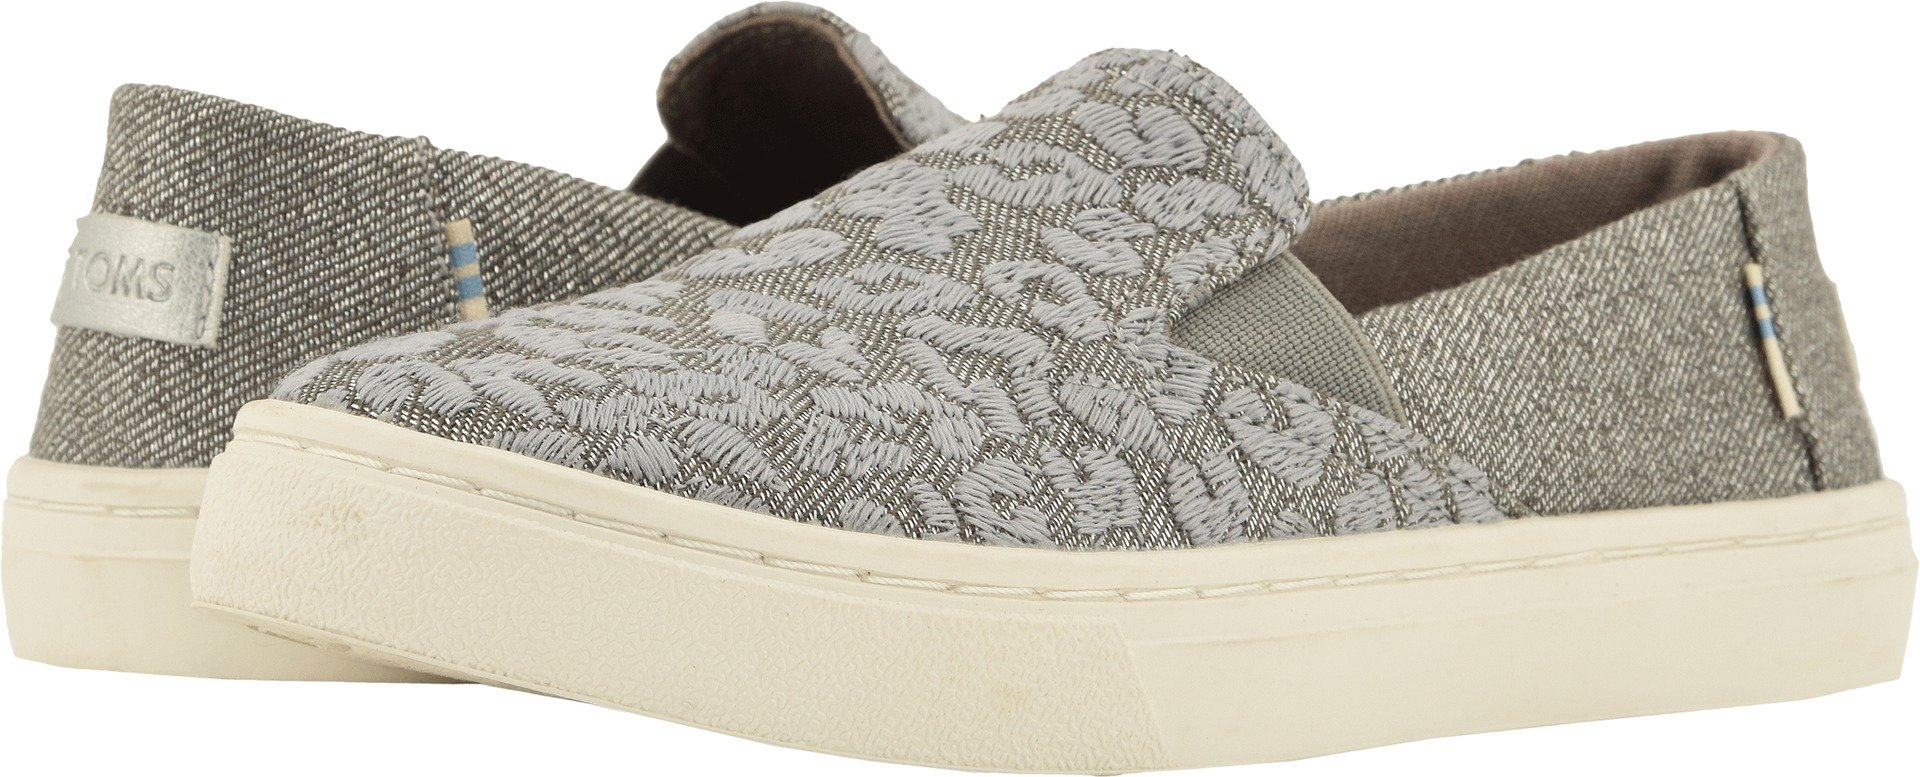 TOMS Youth Luca Cotton Slip-On, Size: 3.5 M US Big Kid, Color Ntrl Grey CHT Emb/Twill Gl